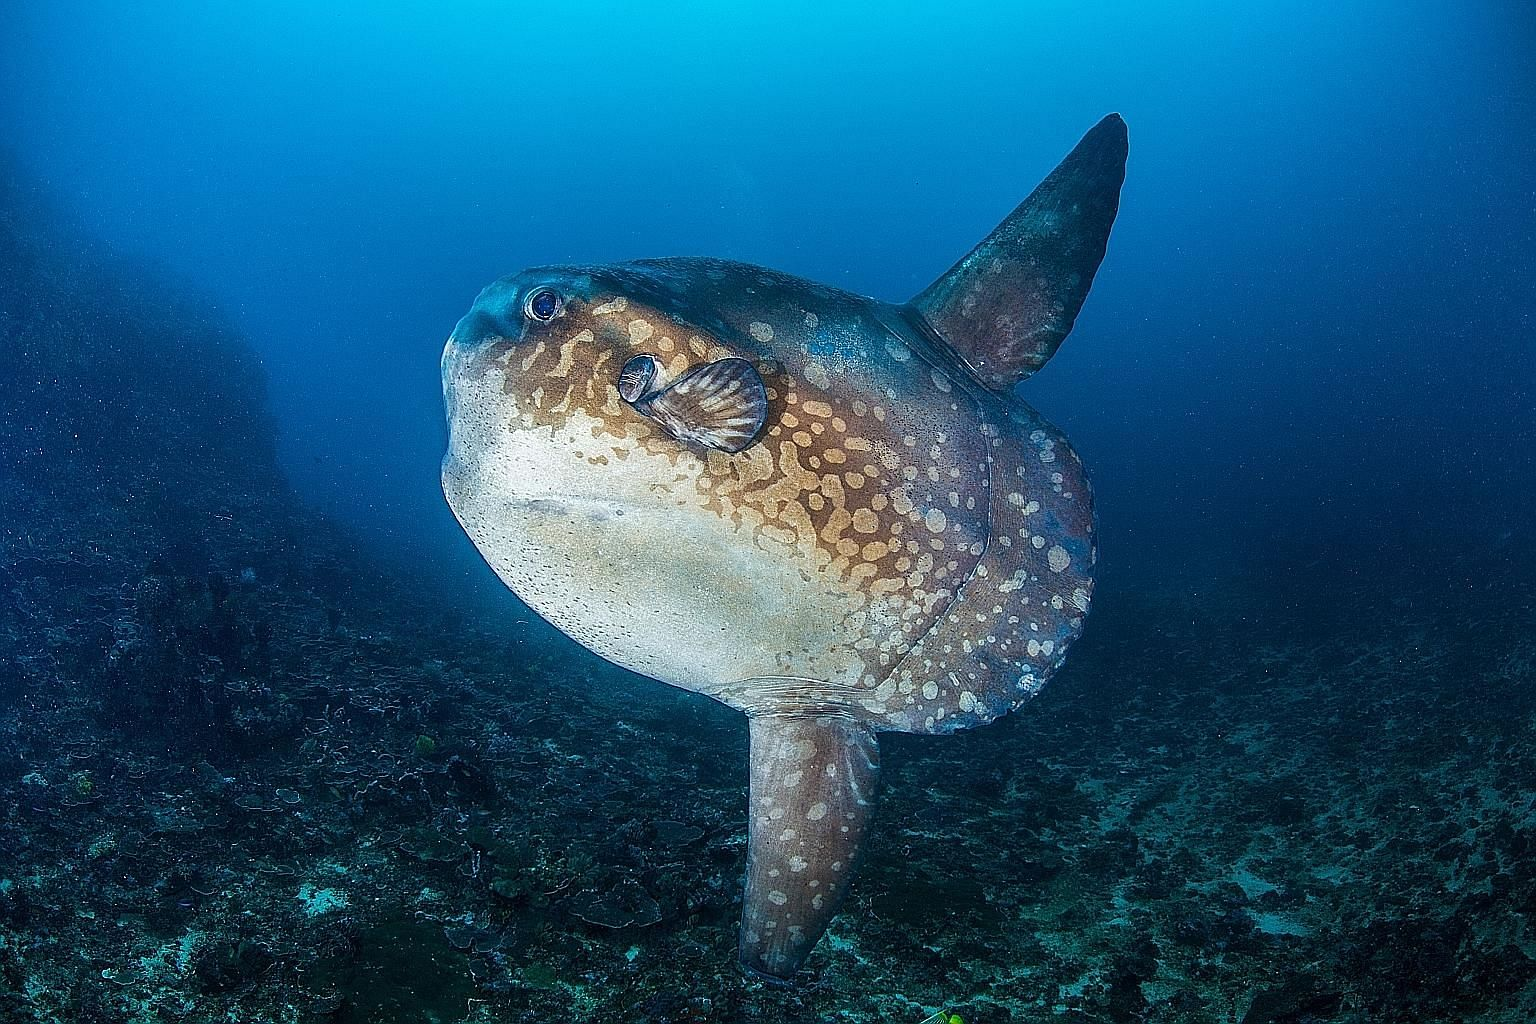 The ocean sunfish can grow up to a length of 2.7m and weigh up to 2.3 tonnes. Its size could increase its survival rate and help it produce more eggs than any other animal, says Professor Byrappa Venkatesh.